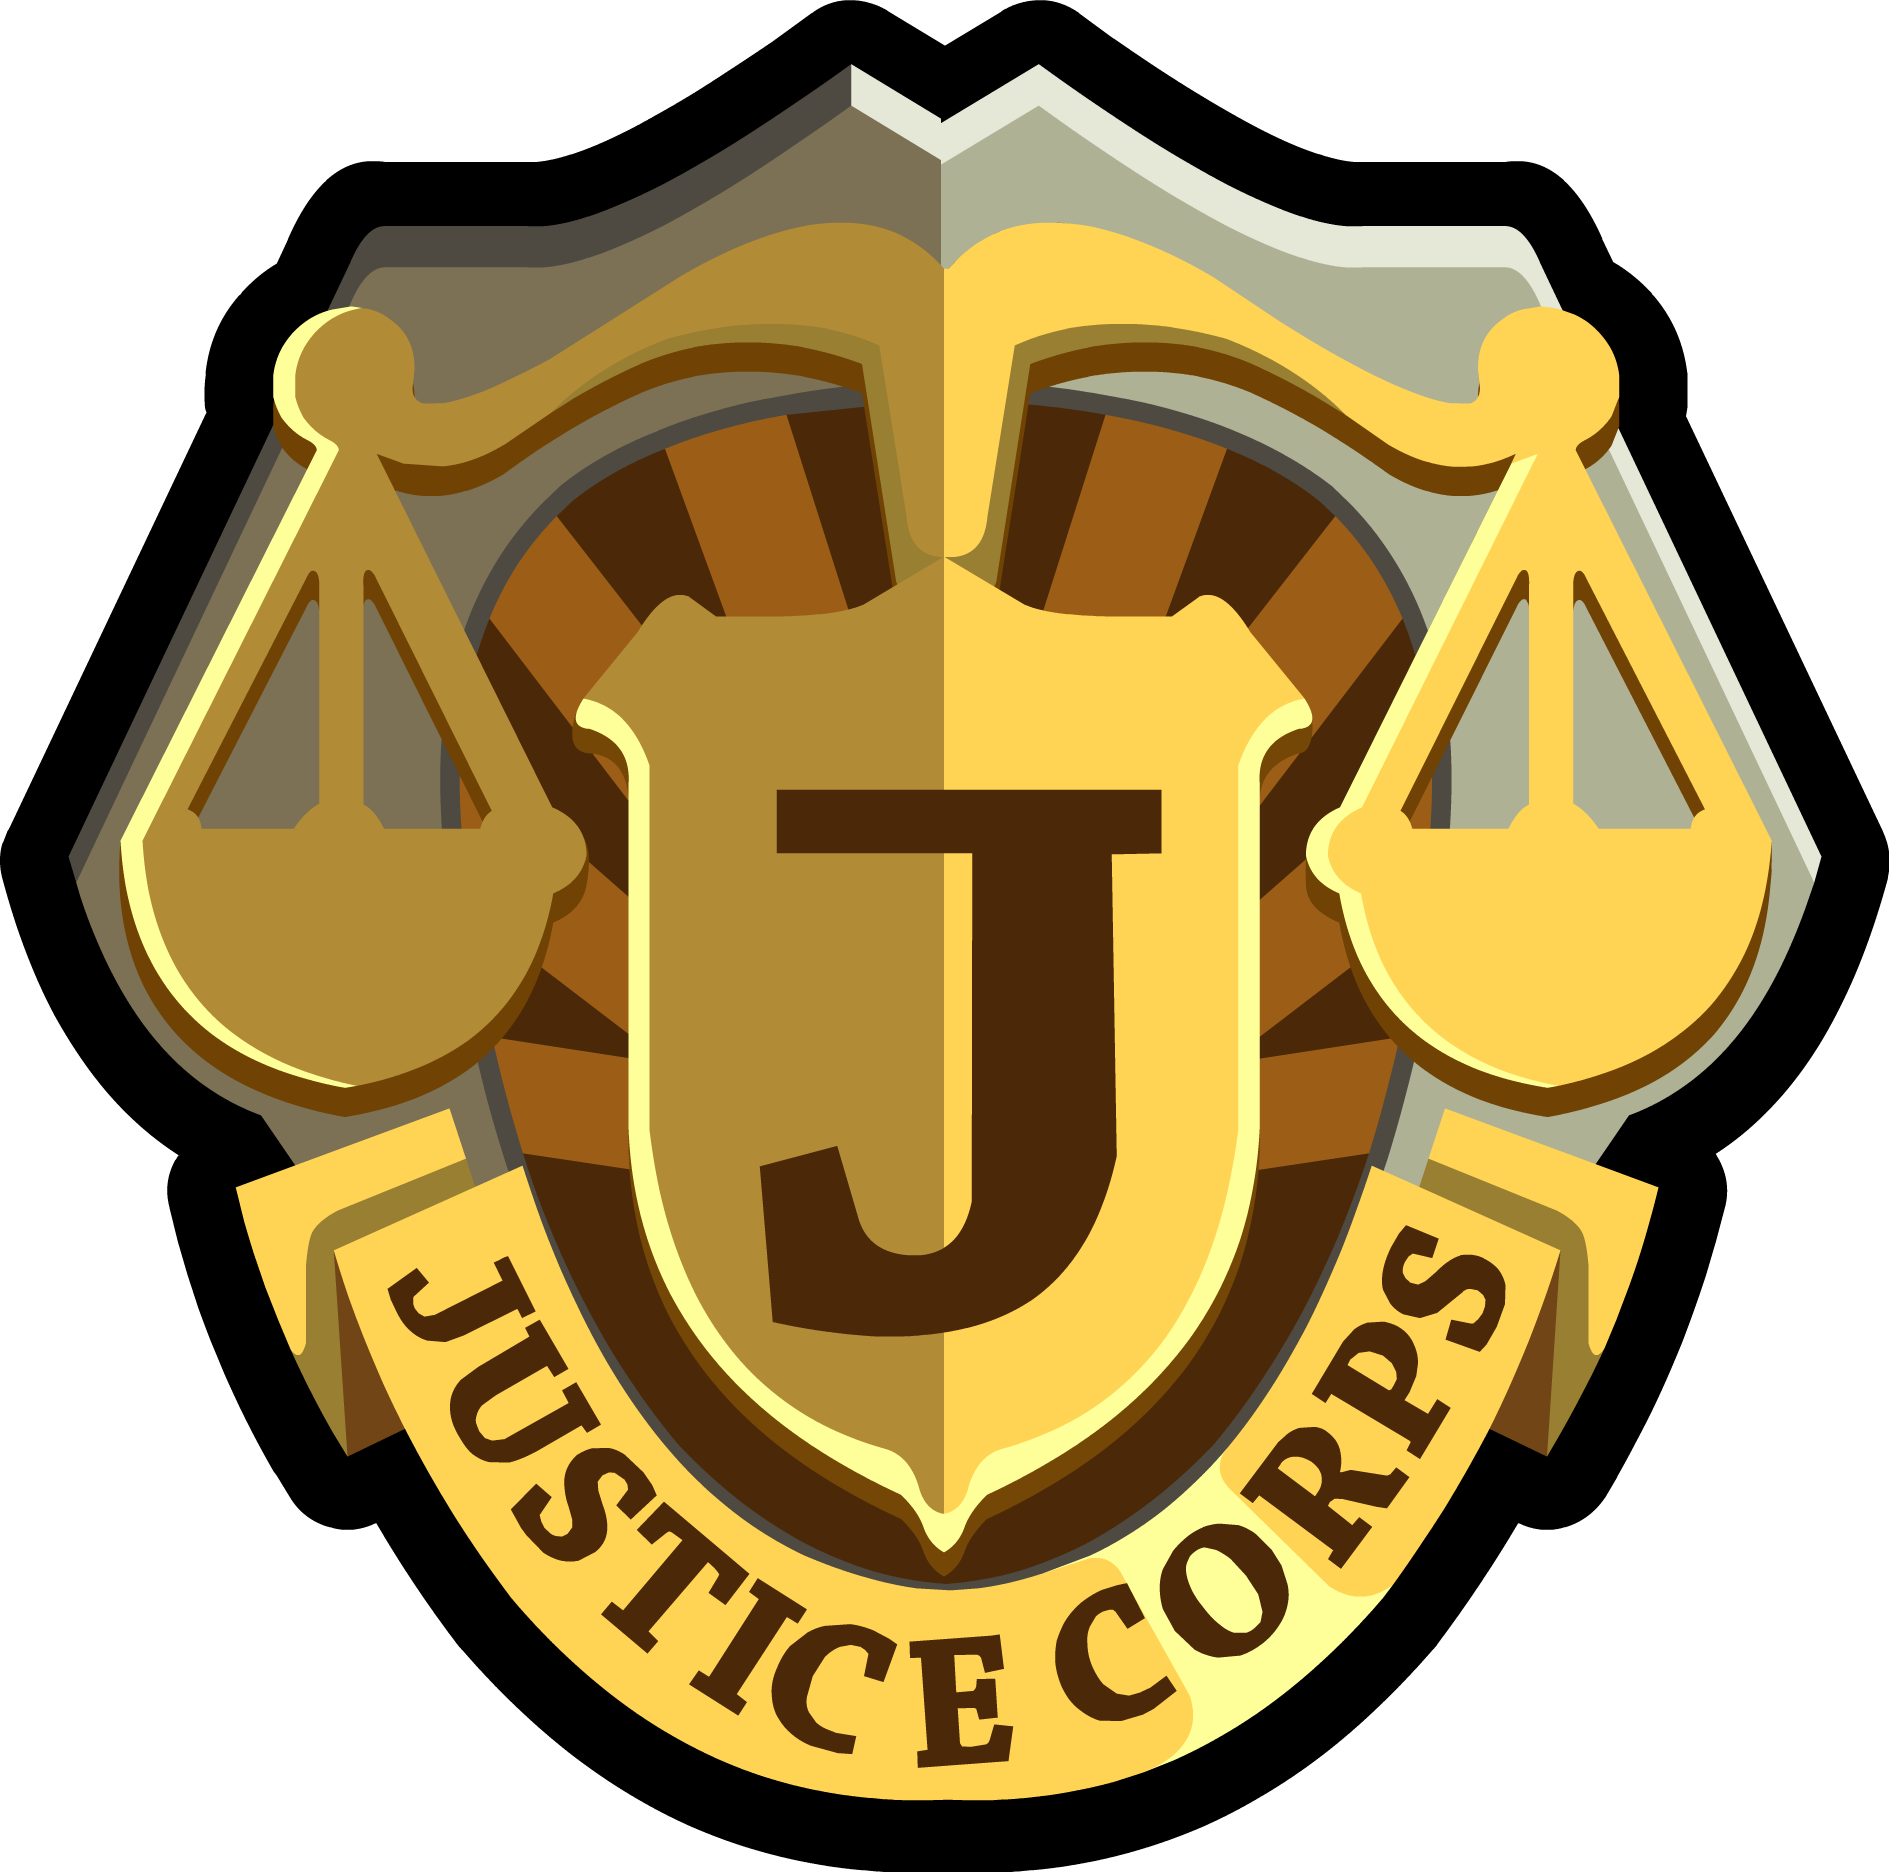 Justice corps criminal case wiki fandom powered by wikia justice corps biocorpaavc Choice Image